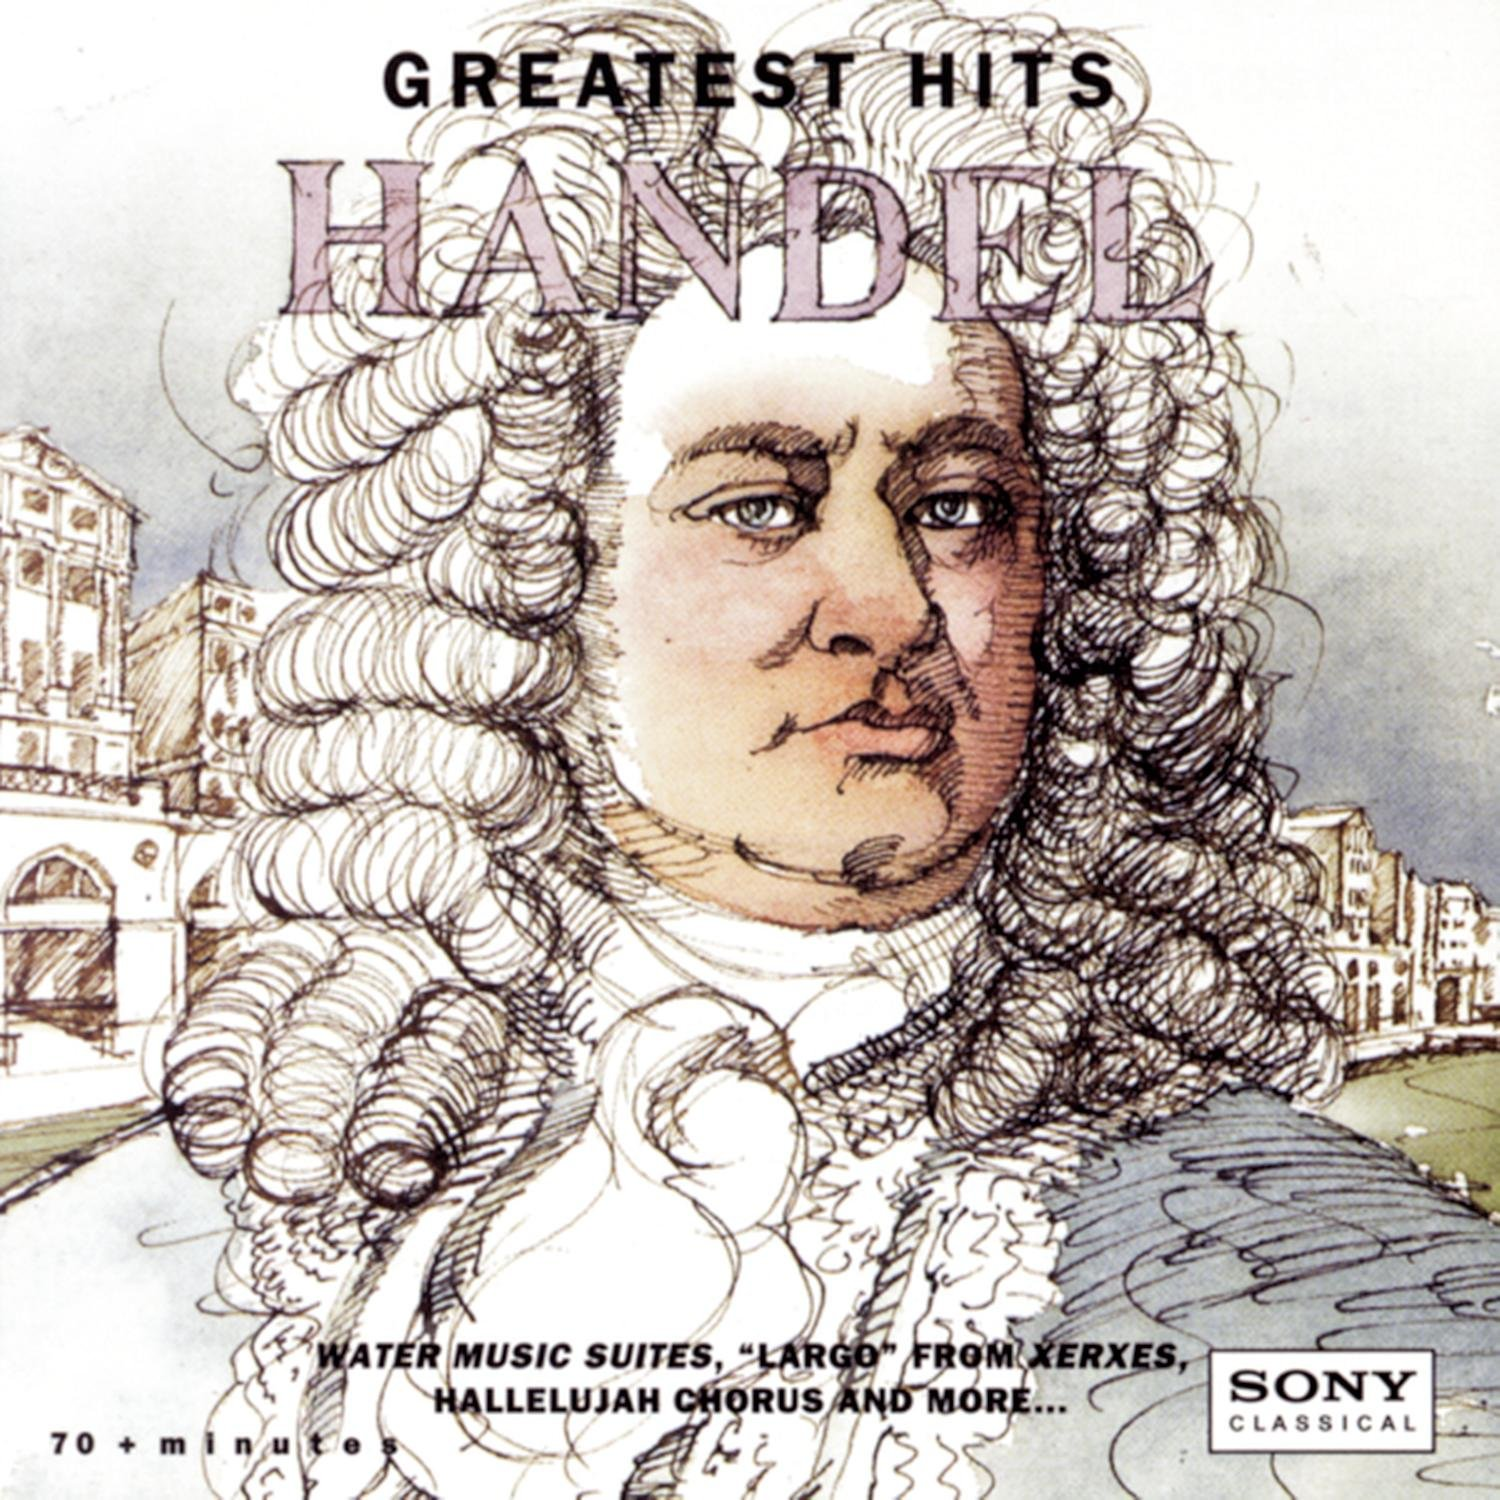 Handel: Greatest Hits by Sony Classical